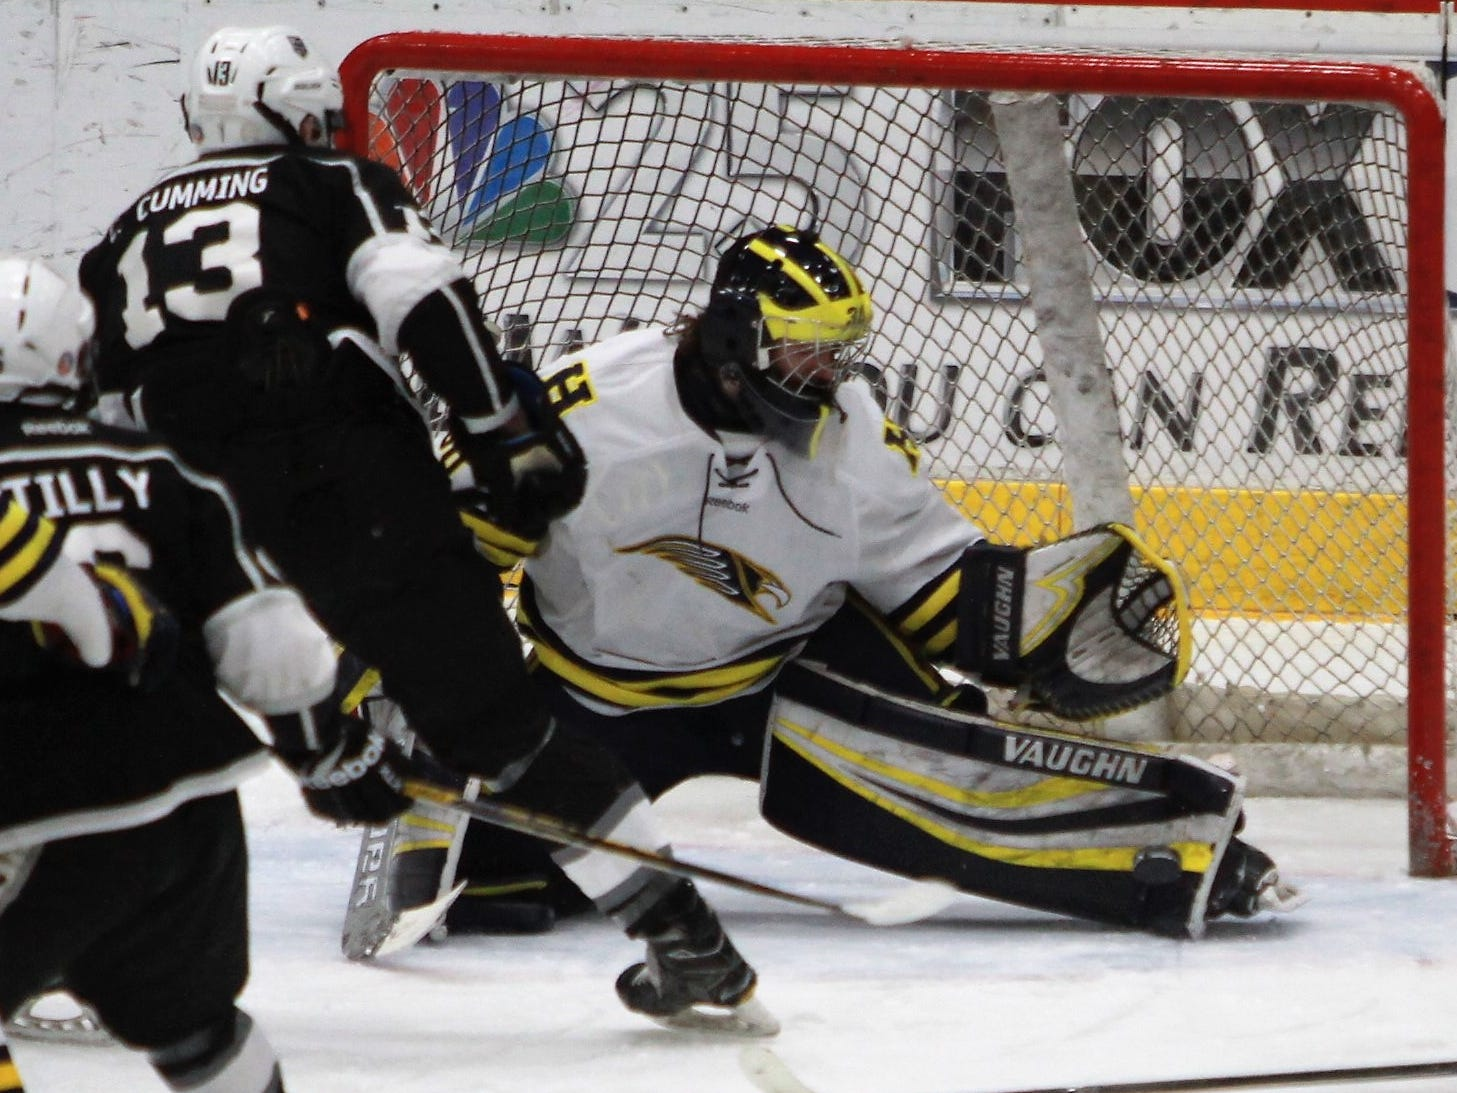 Hartland goalie Brett Tome makes one of his 15 saves on Cure Cumming of Forest Hills Eastern in a 6-0 state quarterfinal hockey victory on Tuesday, March 5, 2019.